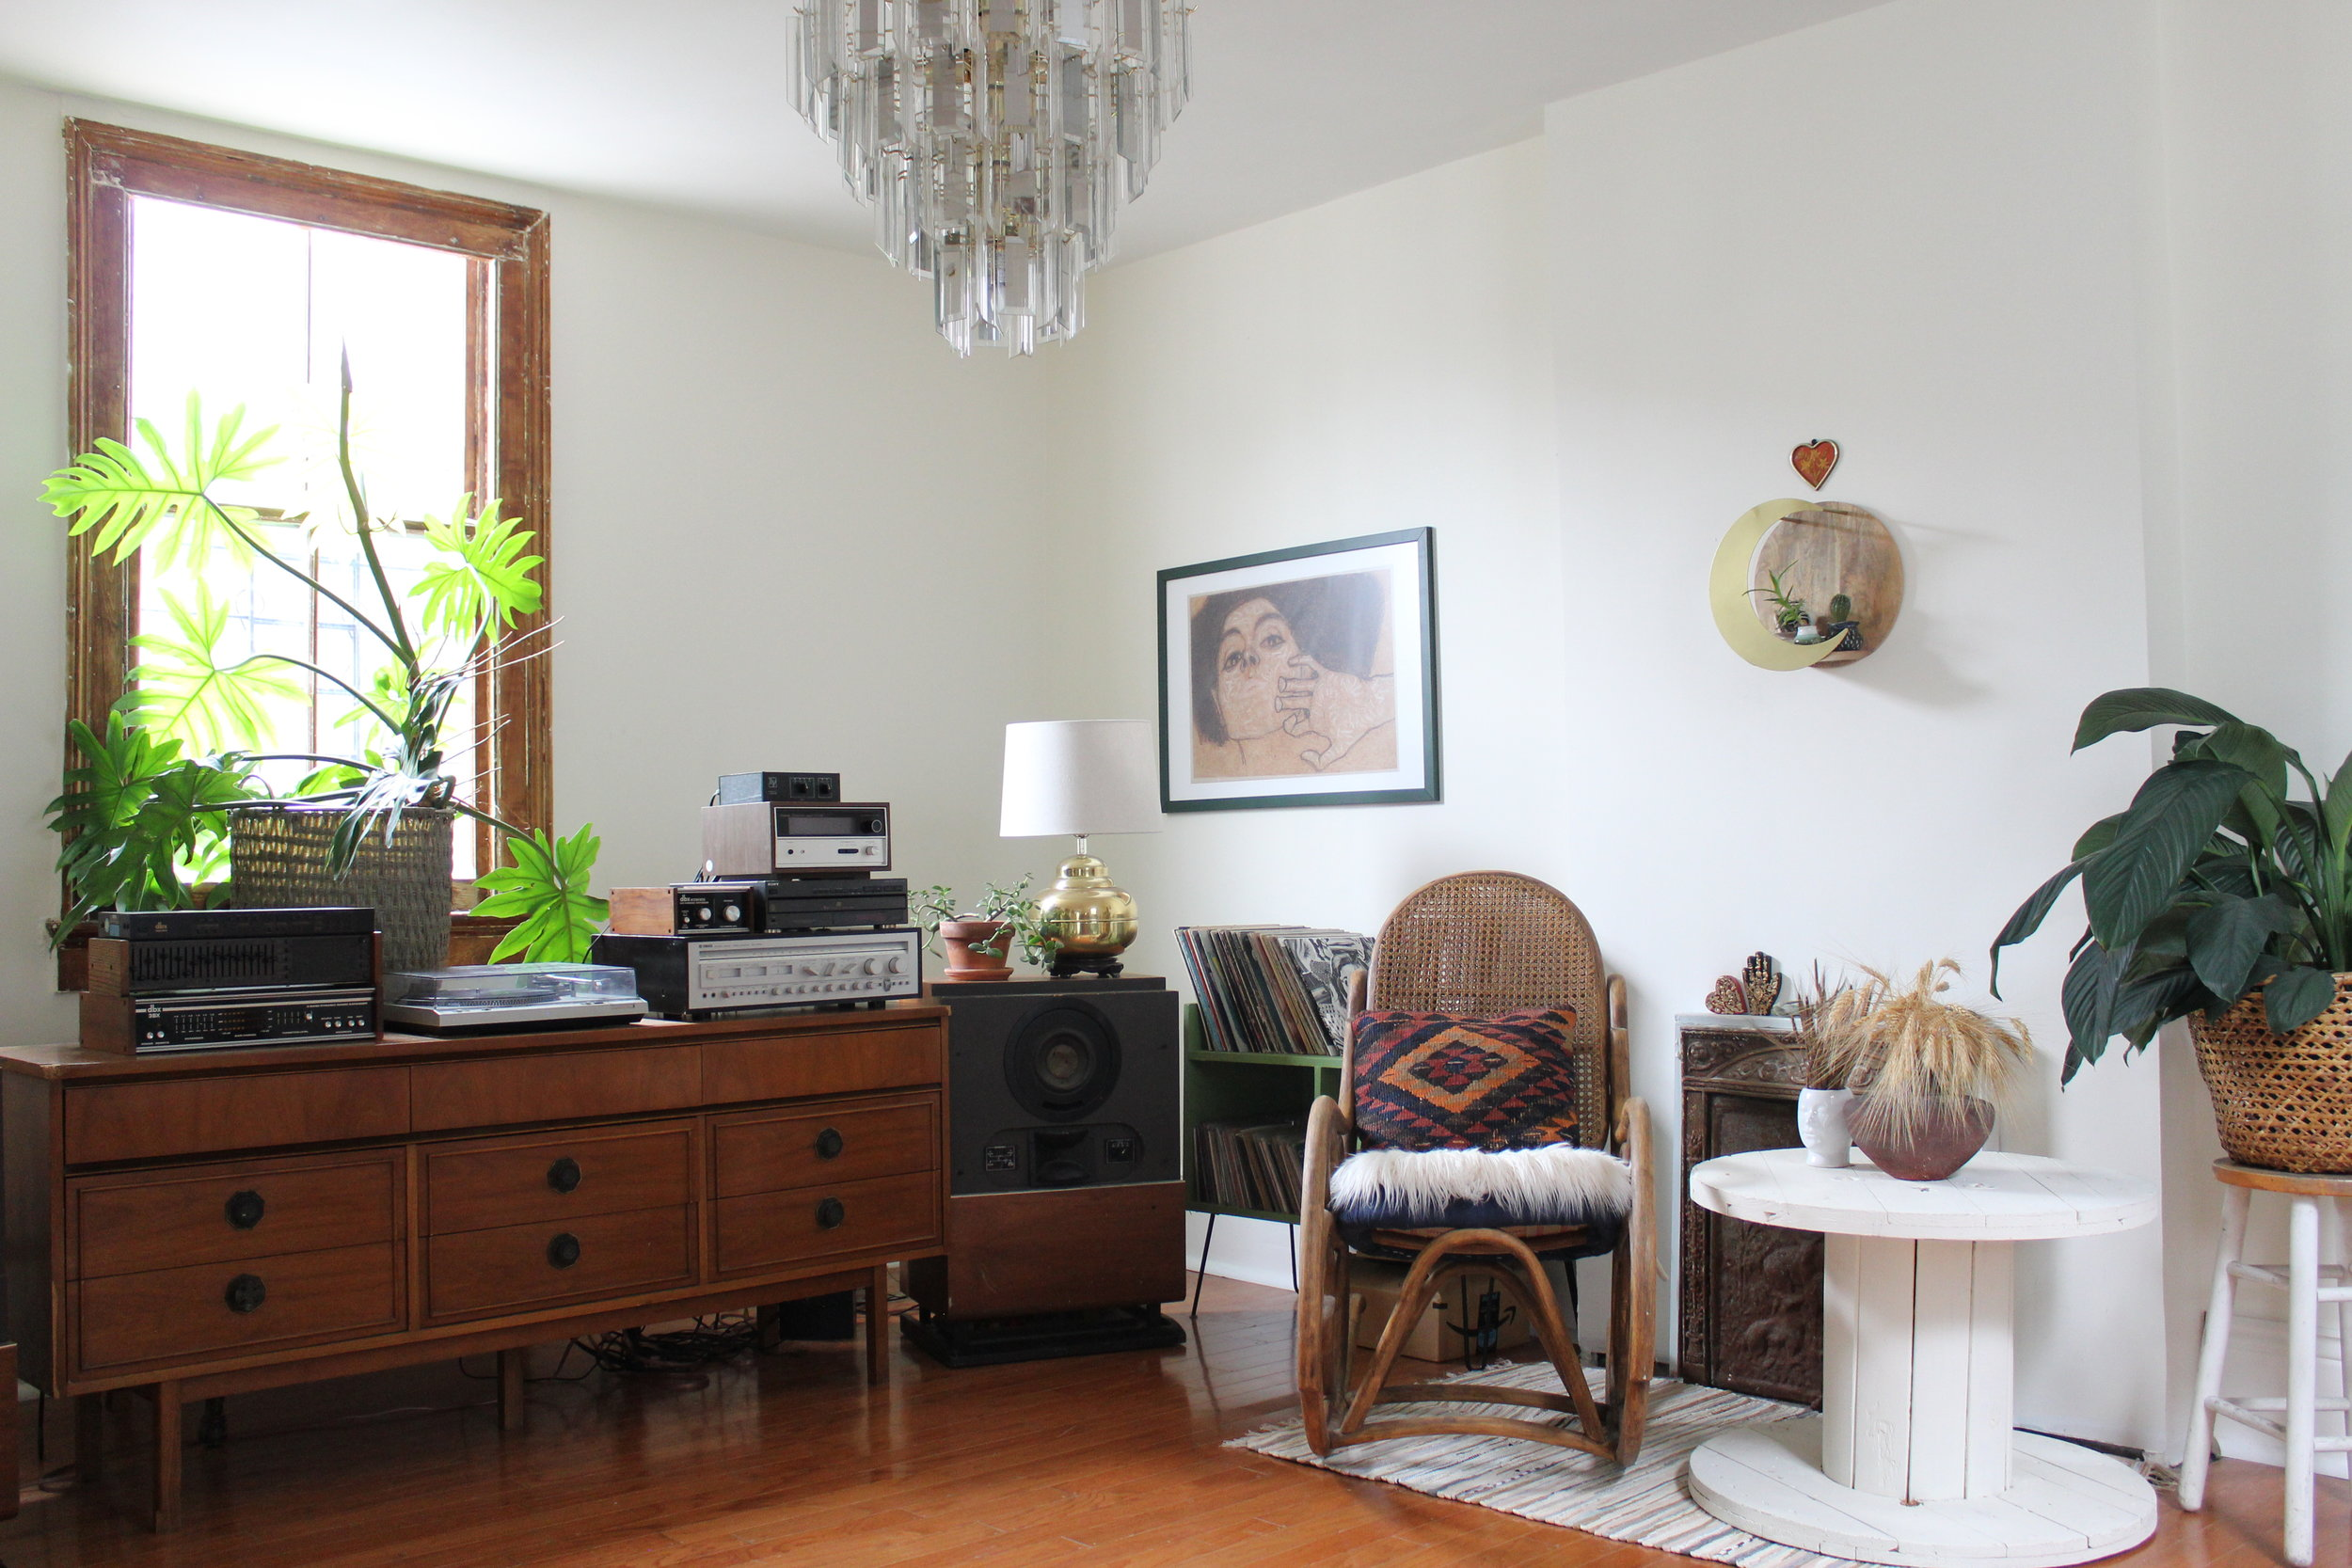 First impression to the home. Original chandelier and a collection of vintage thrifted items.